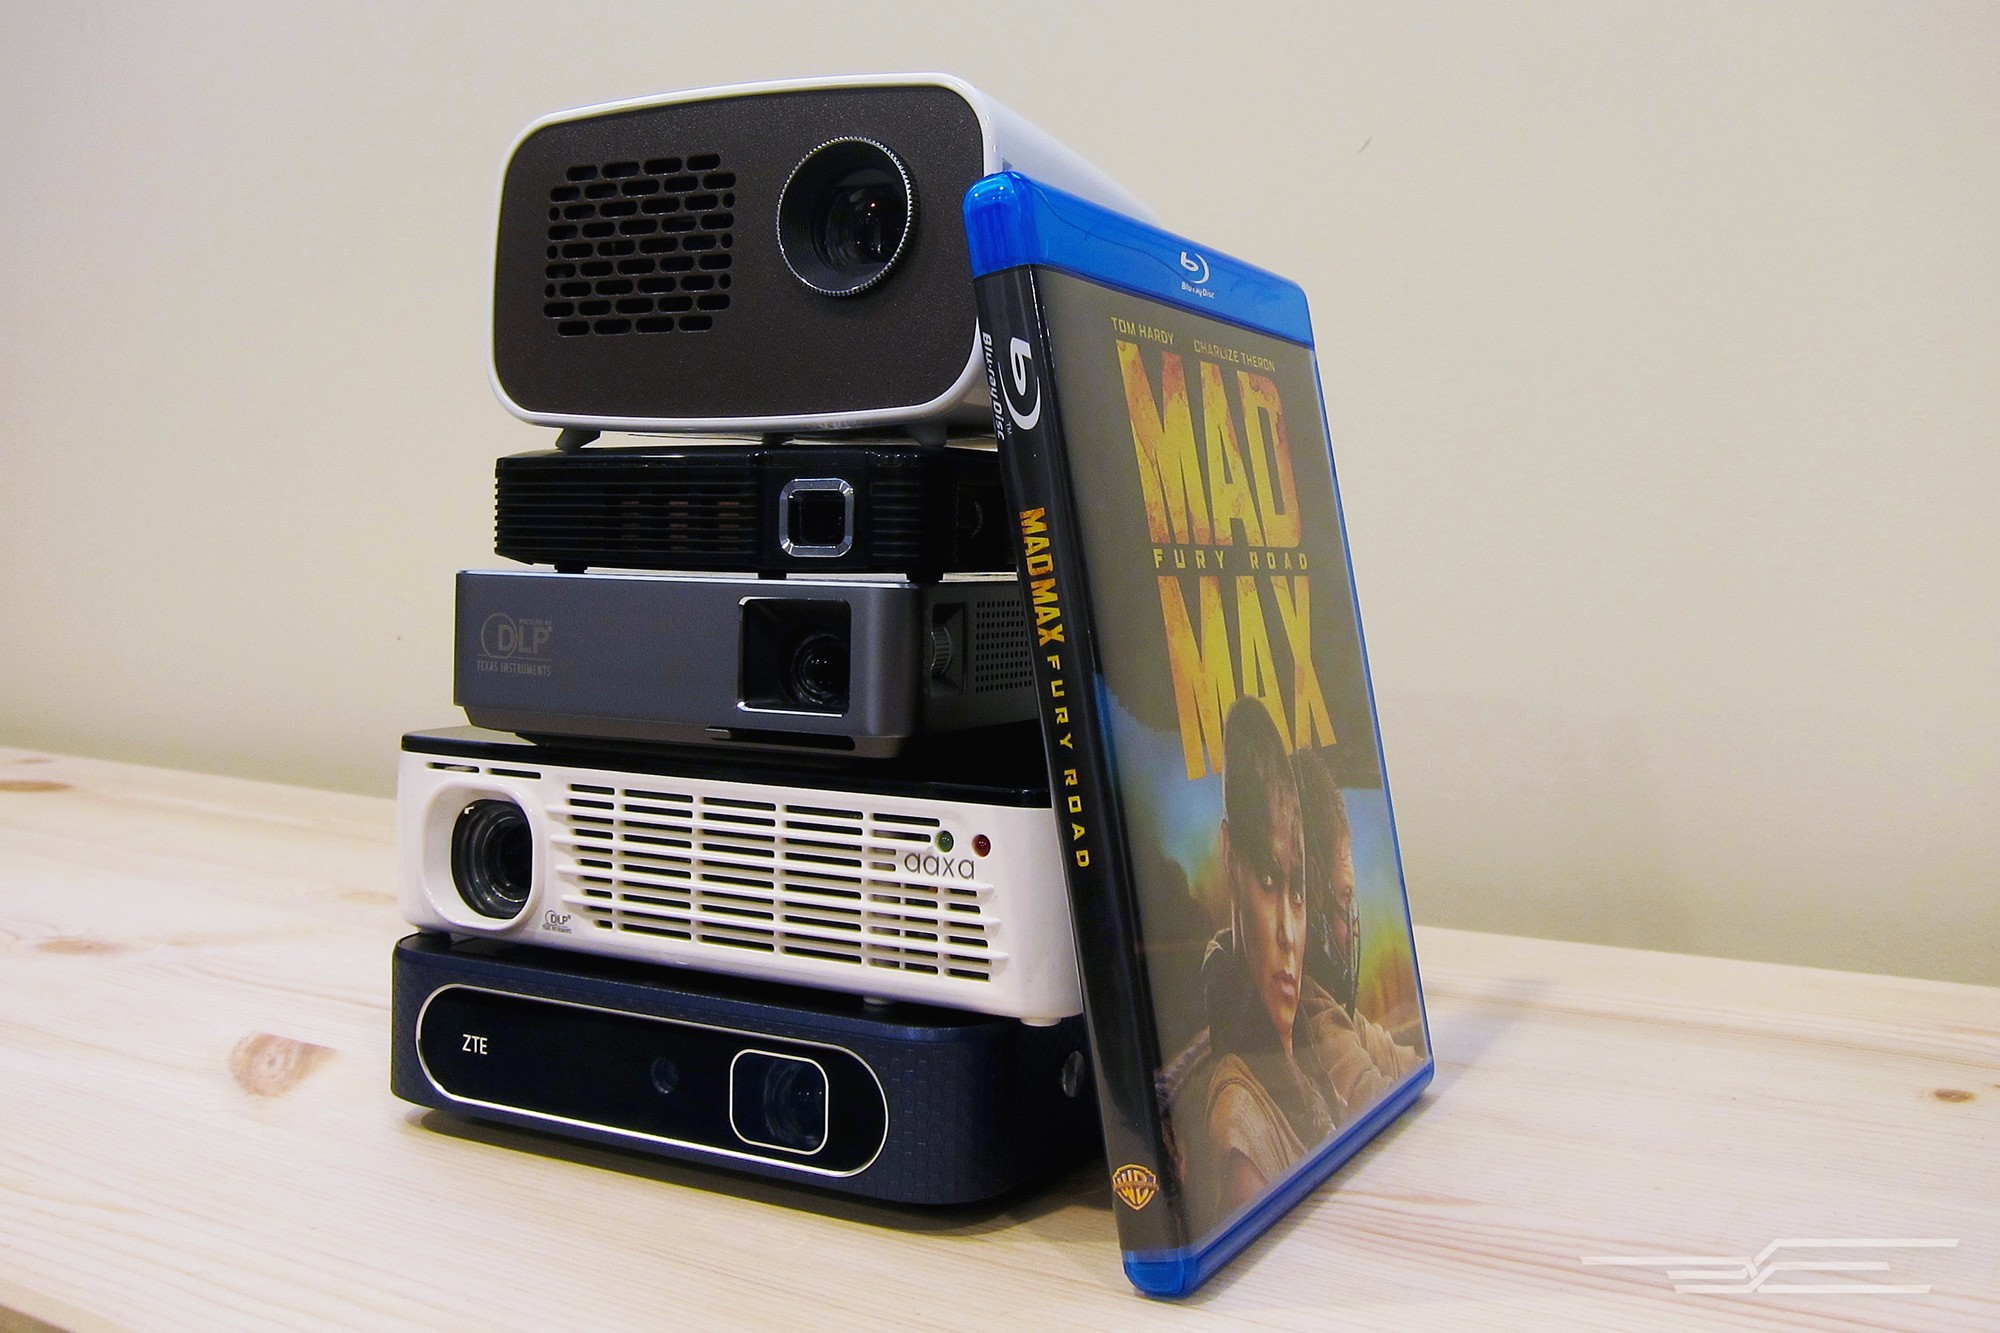 The best pico projector for Best pico projector for ipad 2